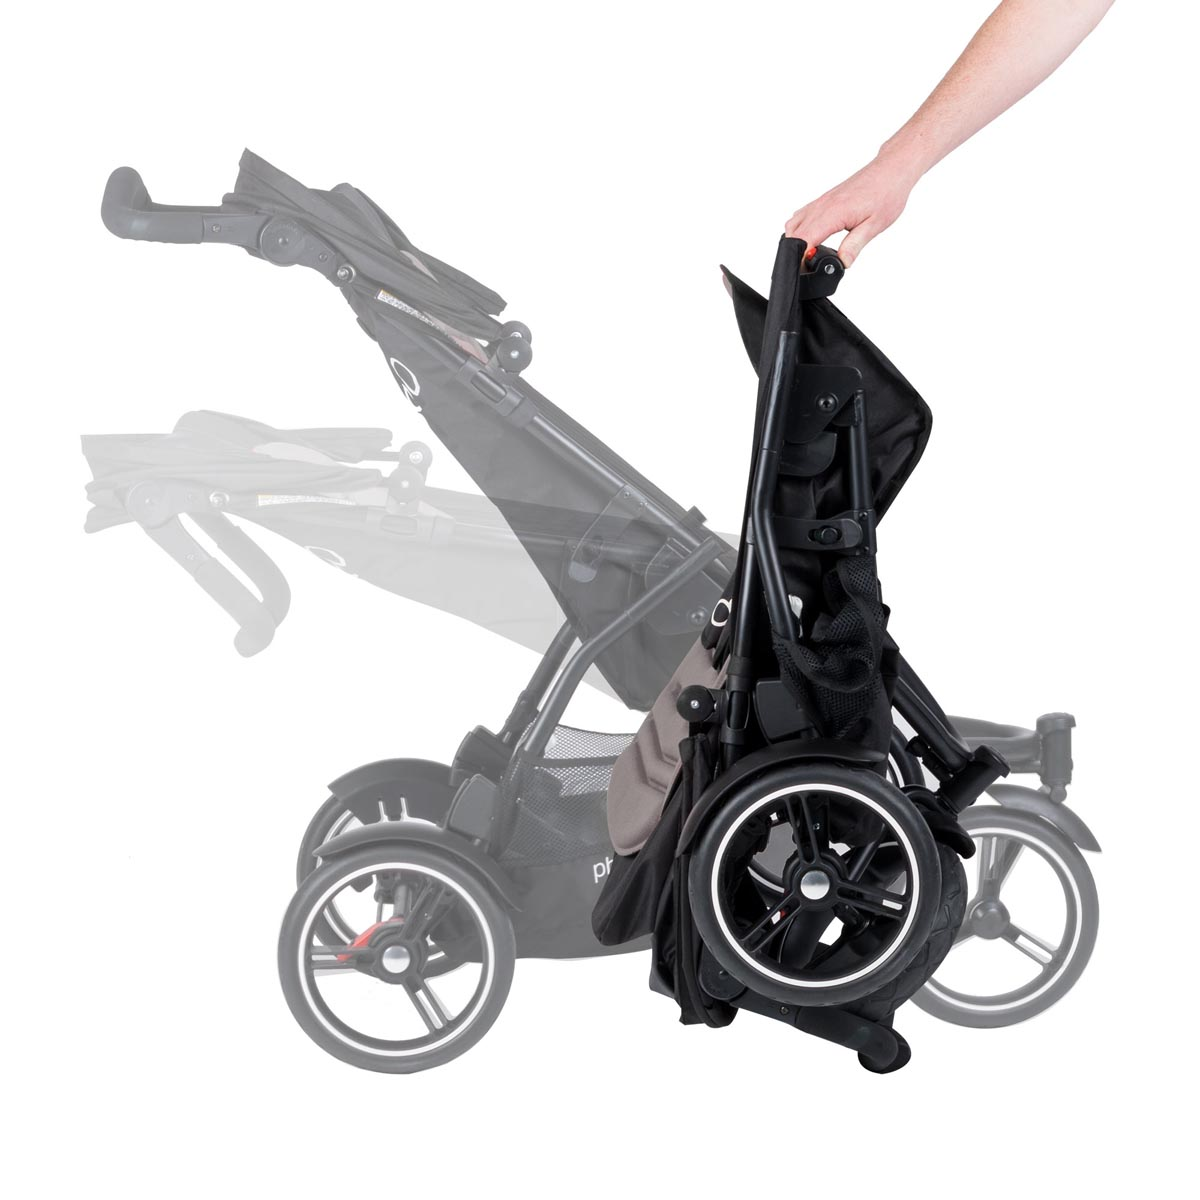 phil-teds-dot-compact-stroller-with-double-kit-one-hand-fast-fold.jpg